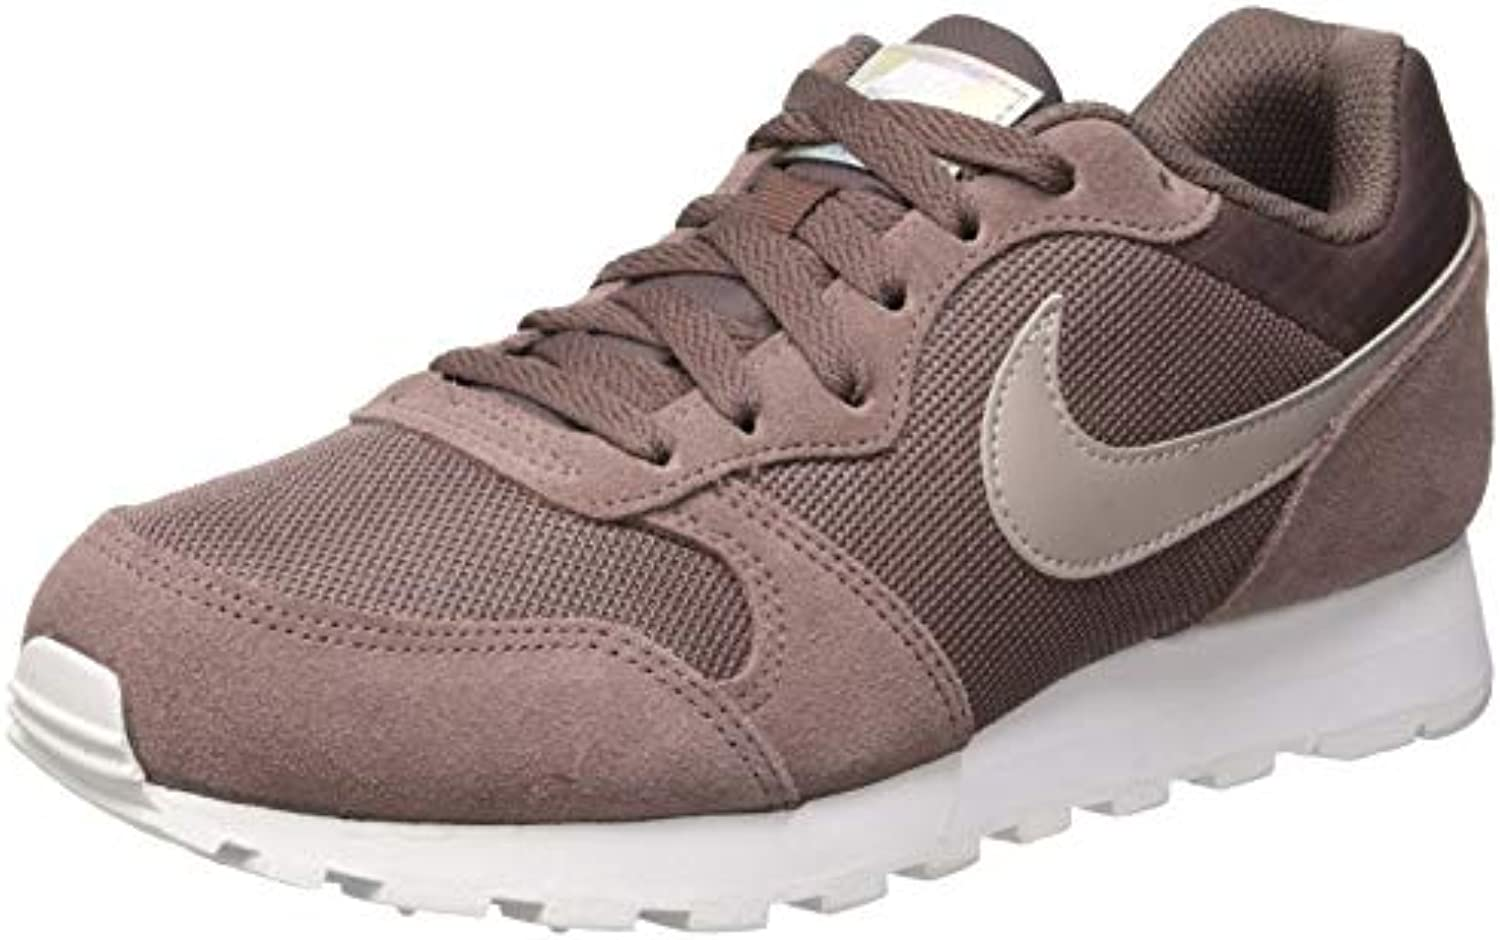 new style 3e30d 47ef8 Nike Wmns Wmns Wmns MD Runner 2, Scarpe da Running Donna   Dall ultimo